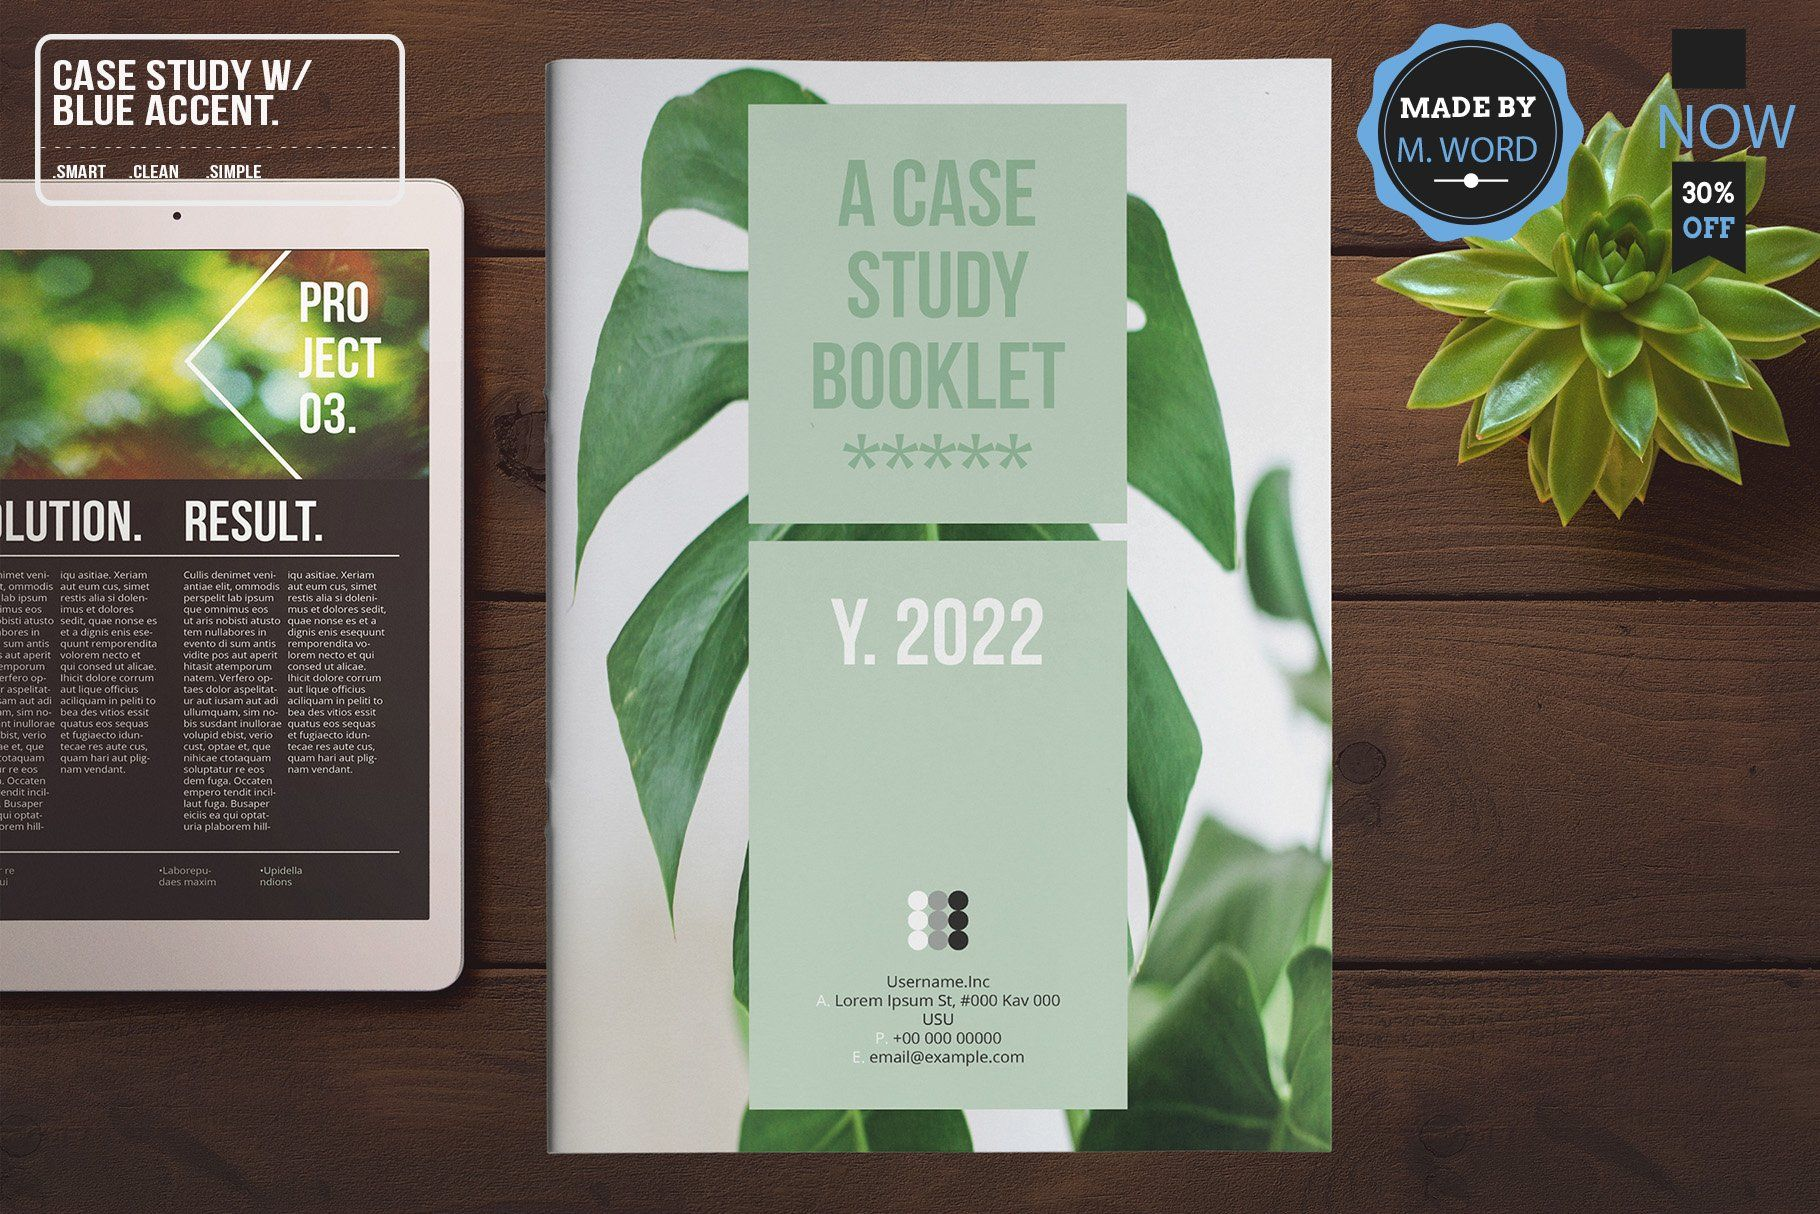 Case study with blue accent layout sponsored word